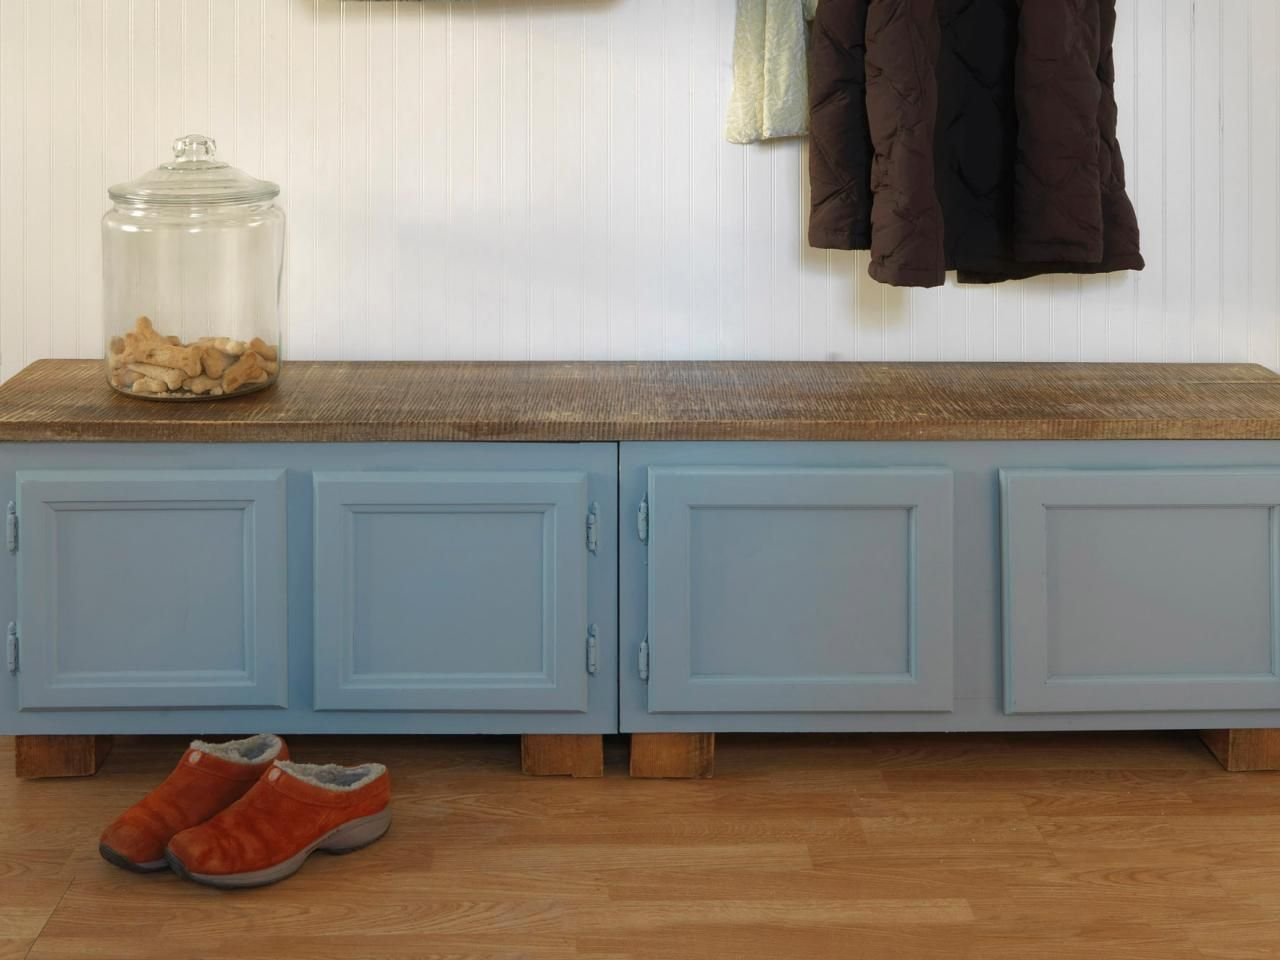 How to Make a Mudroom Bench Using Old Kitchen Cabinets | Old ... Ideas For Kitchen Cabinets Diy Extra on diy ideas for storage, diy ideas for fireplaces, diy ideas for stairs, diy ideas for living room, diy ideas for home, diy ideas for shutters, diy custom cabinets, diy ideas for ceilings, diy ideas for bookshelves, diy ideas for shelving, diy kitchen projects, diy kitchen ideas cabinet door, diy ideas for concrete, diy ideas for mirrors,